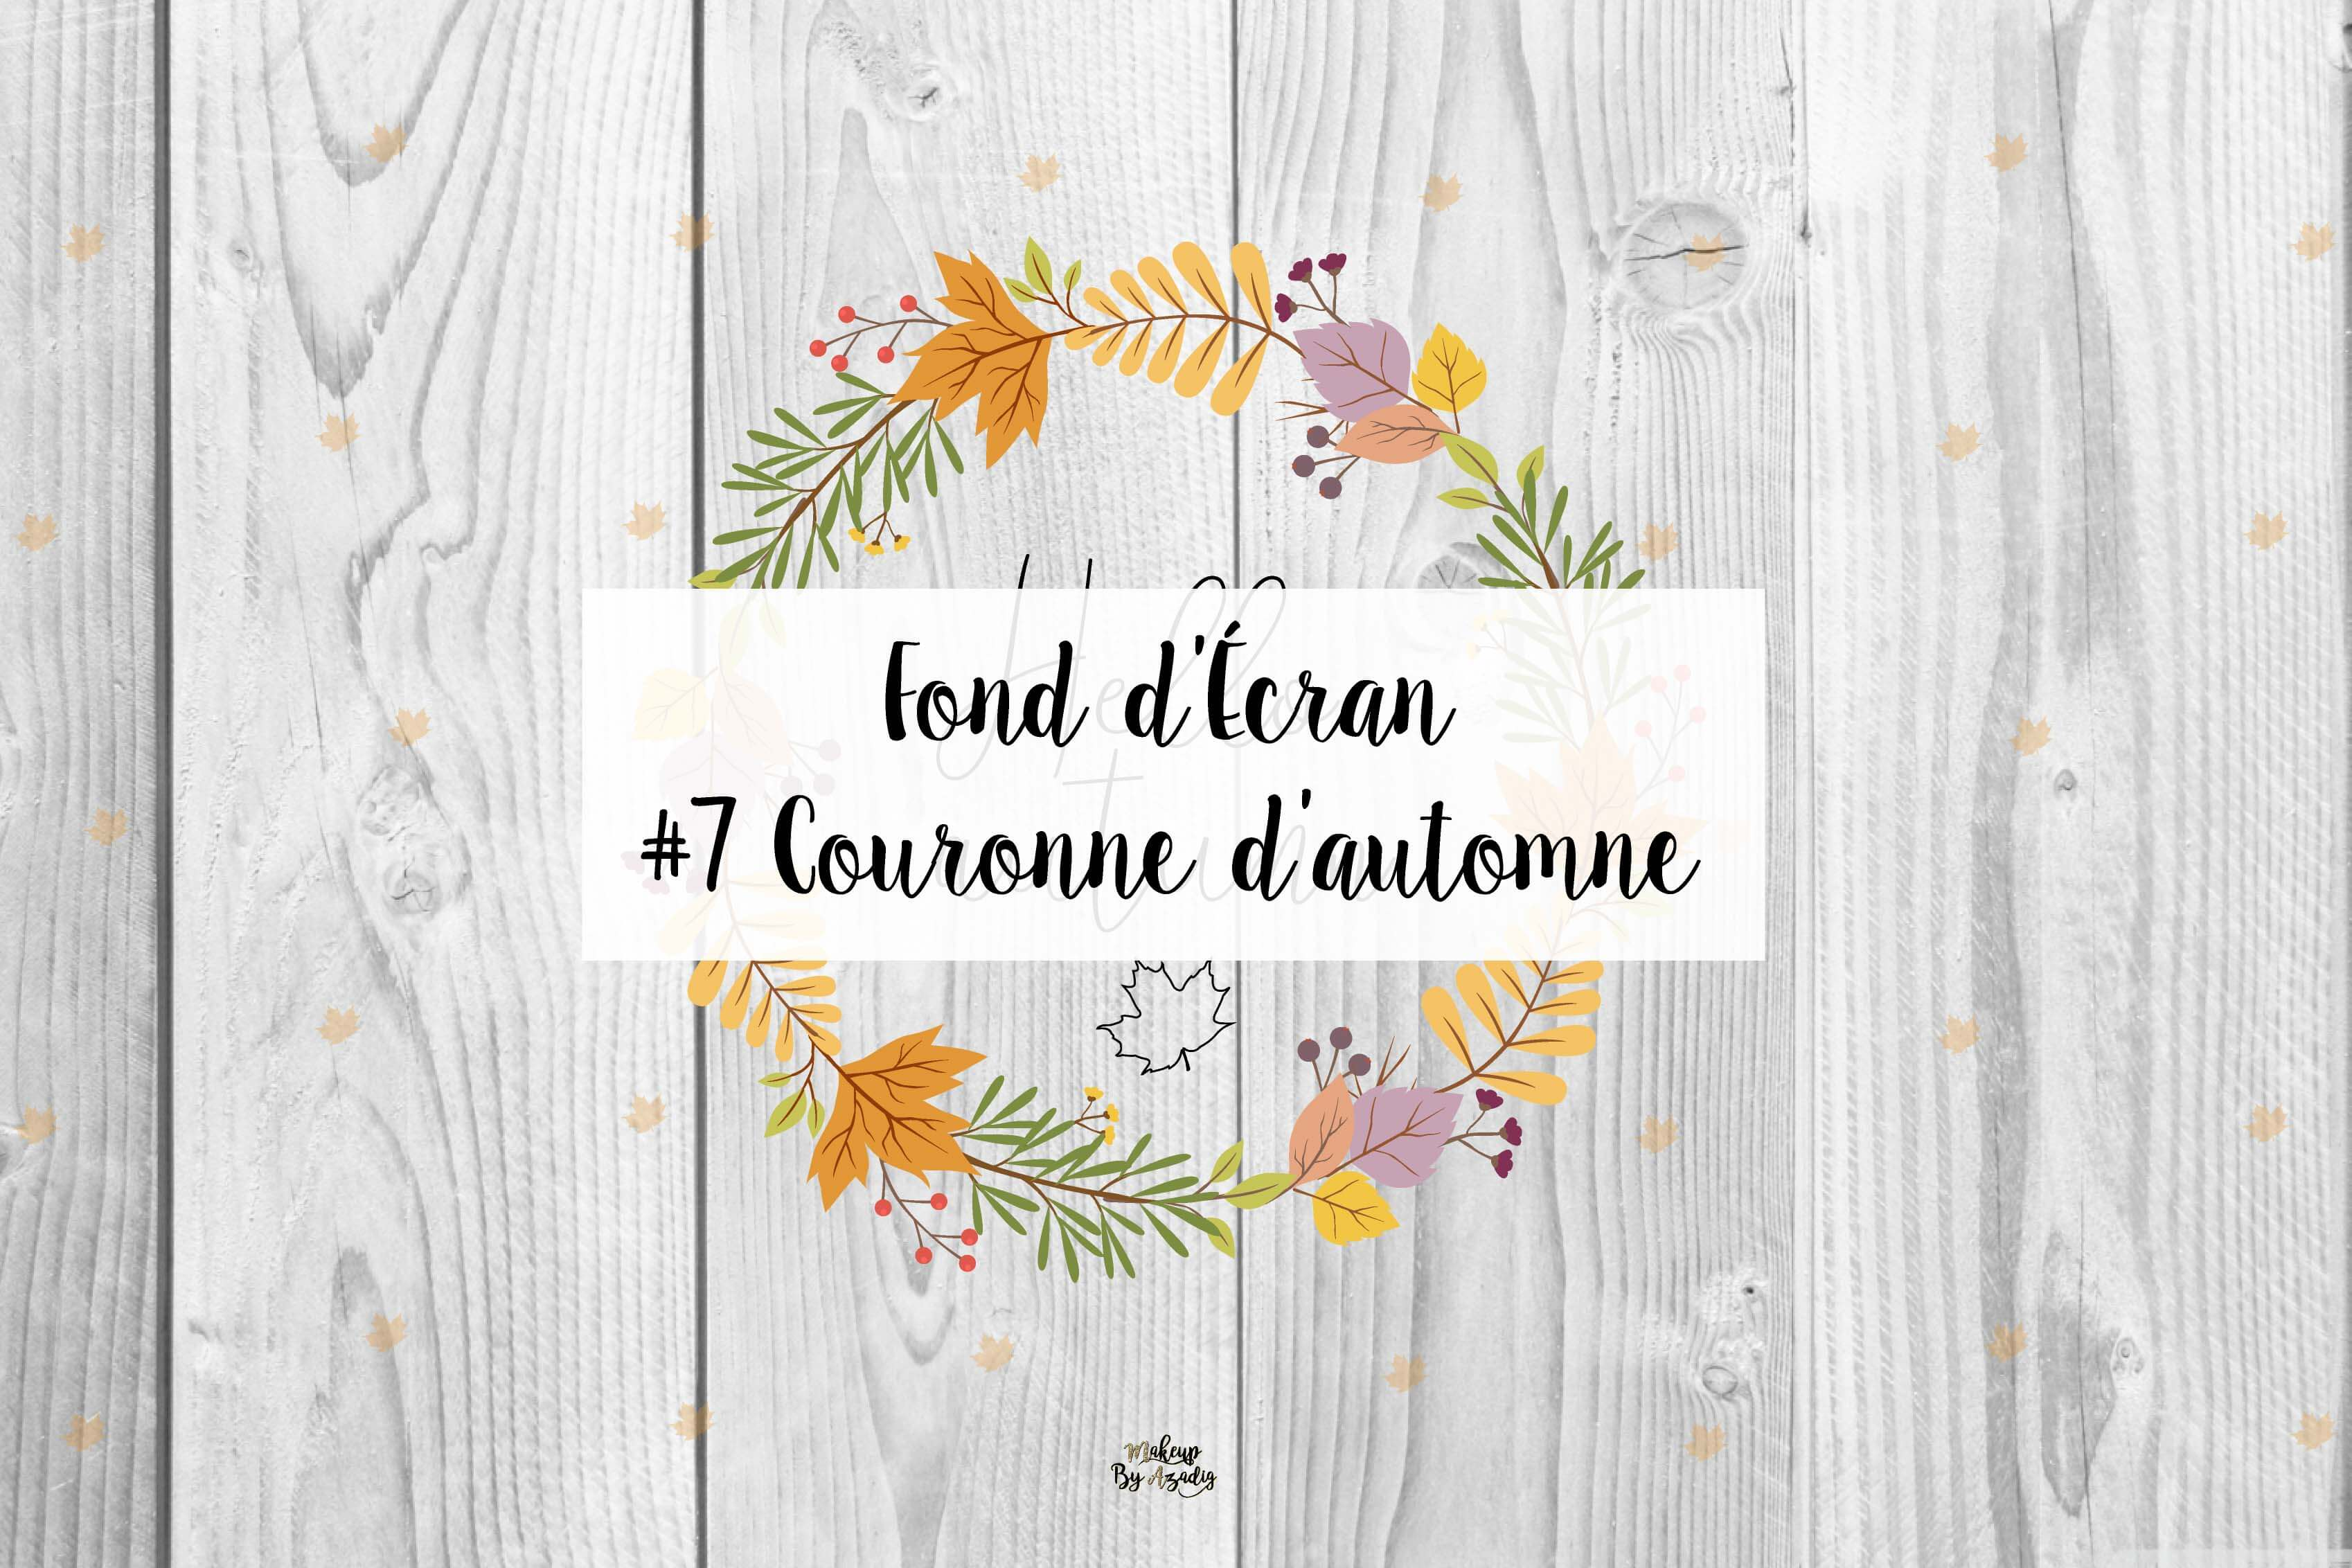 fond-decran-wallpaper-hello-couronne-automne-ordinateur-iphone-samsung-mac-macbook-imac-pc-makeupbyazadig-miniature